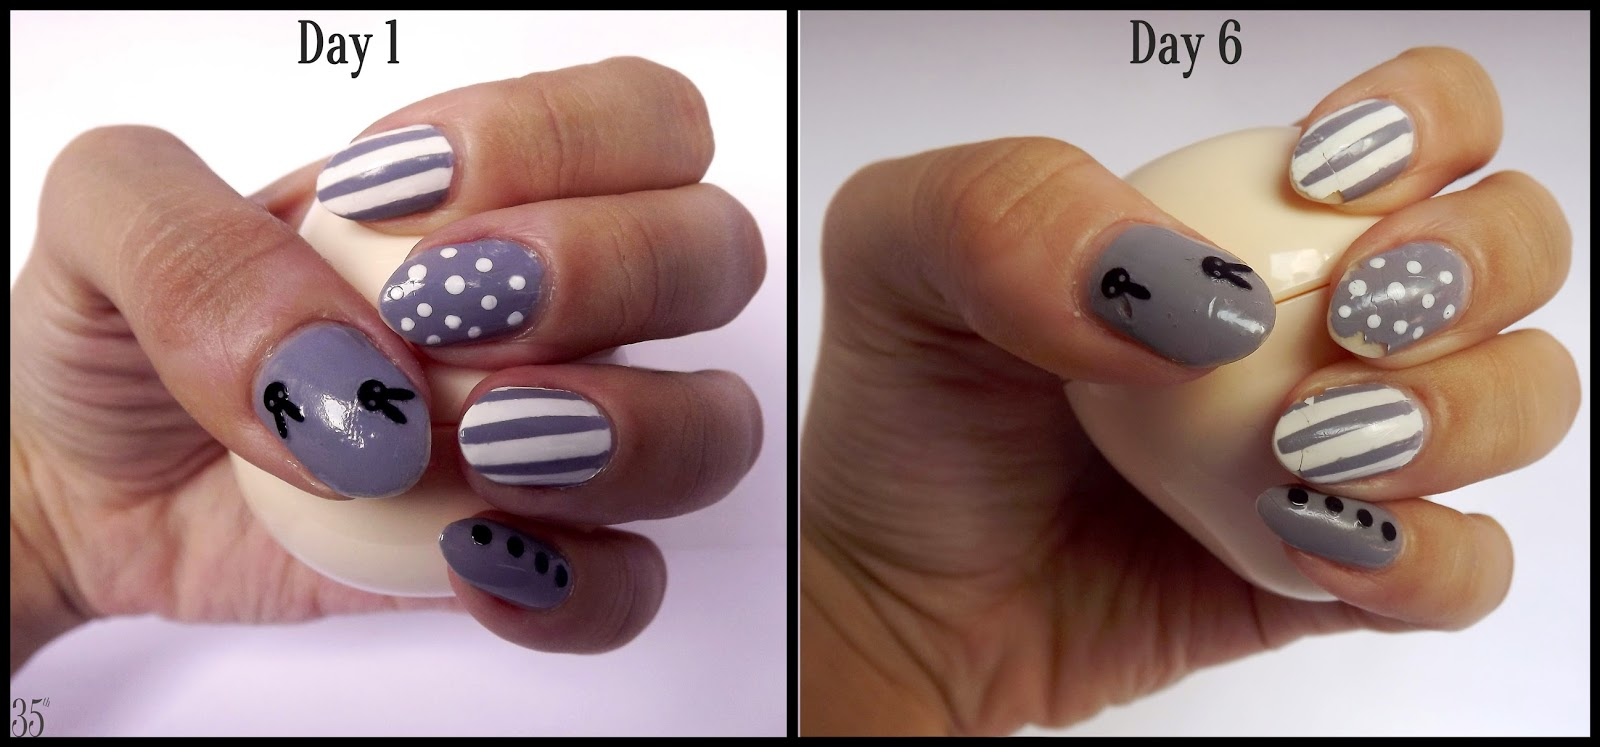 Etude House Sweet Idea Bunny Nails in #1 Dalmatian Bunny